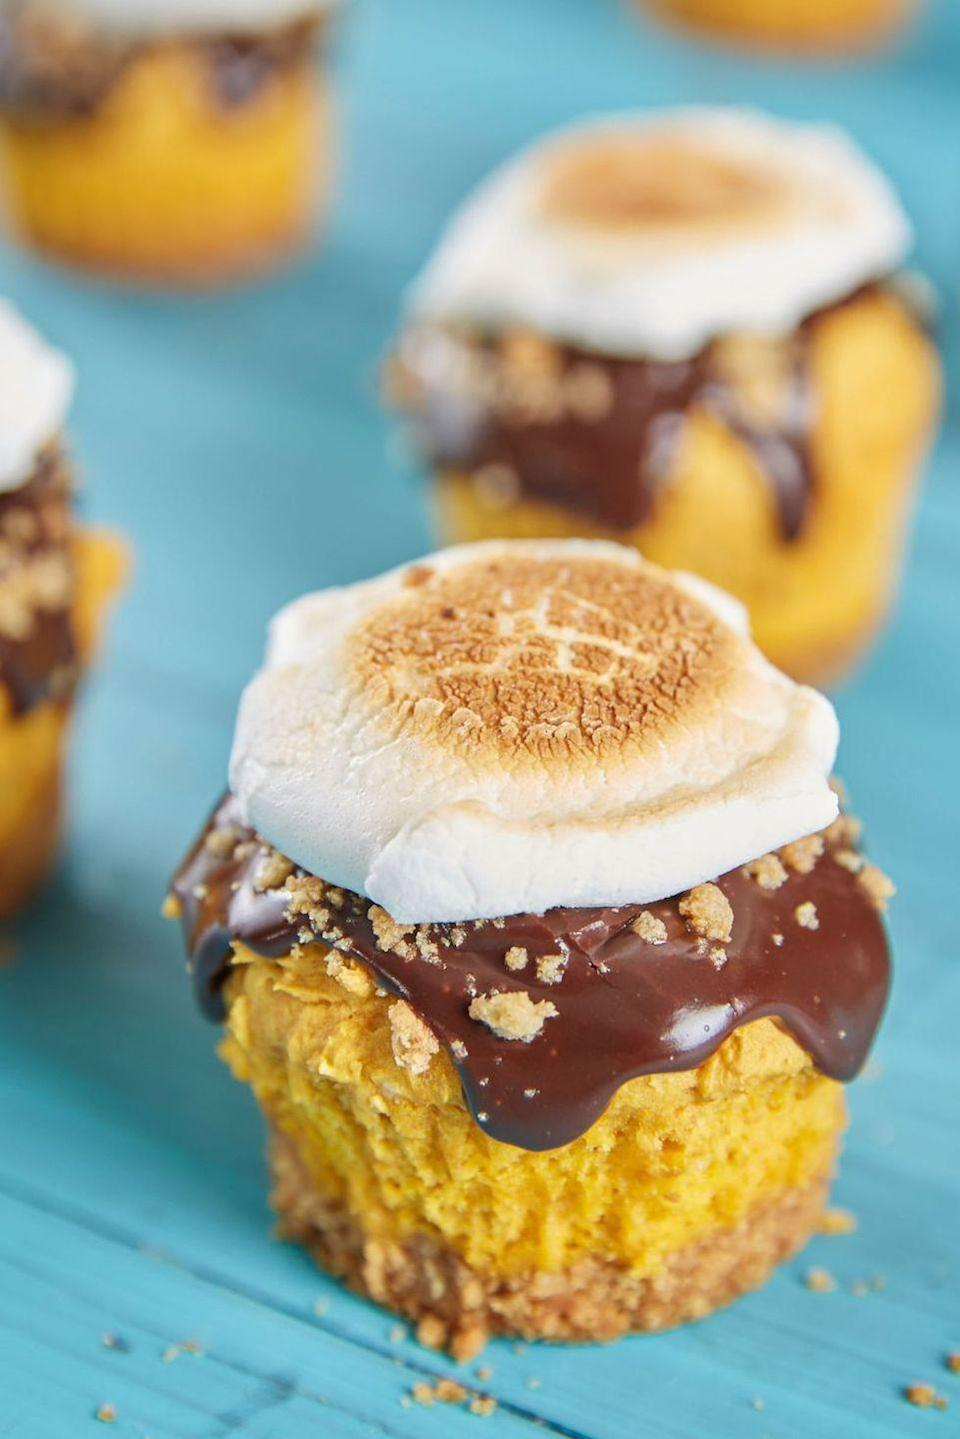 """<p>Anything pumpkin is fit for a Halloween party in our book — and anything s'mores is always welcome.</p><p><em><a href=""""https://www.delish.com/cooking/recipe-ideas/recipes/a49181/smores-pumpkin-cupcakes-recipe/"""" rel=""""nofollow noopener"""" target=""""_blank"""" data-ylk=""""slk:Get the recipe from Delish »"""" class=""""link rapid-noclick-resp"""">Get the recipe from Delish »</a></em></p>"""